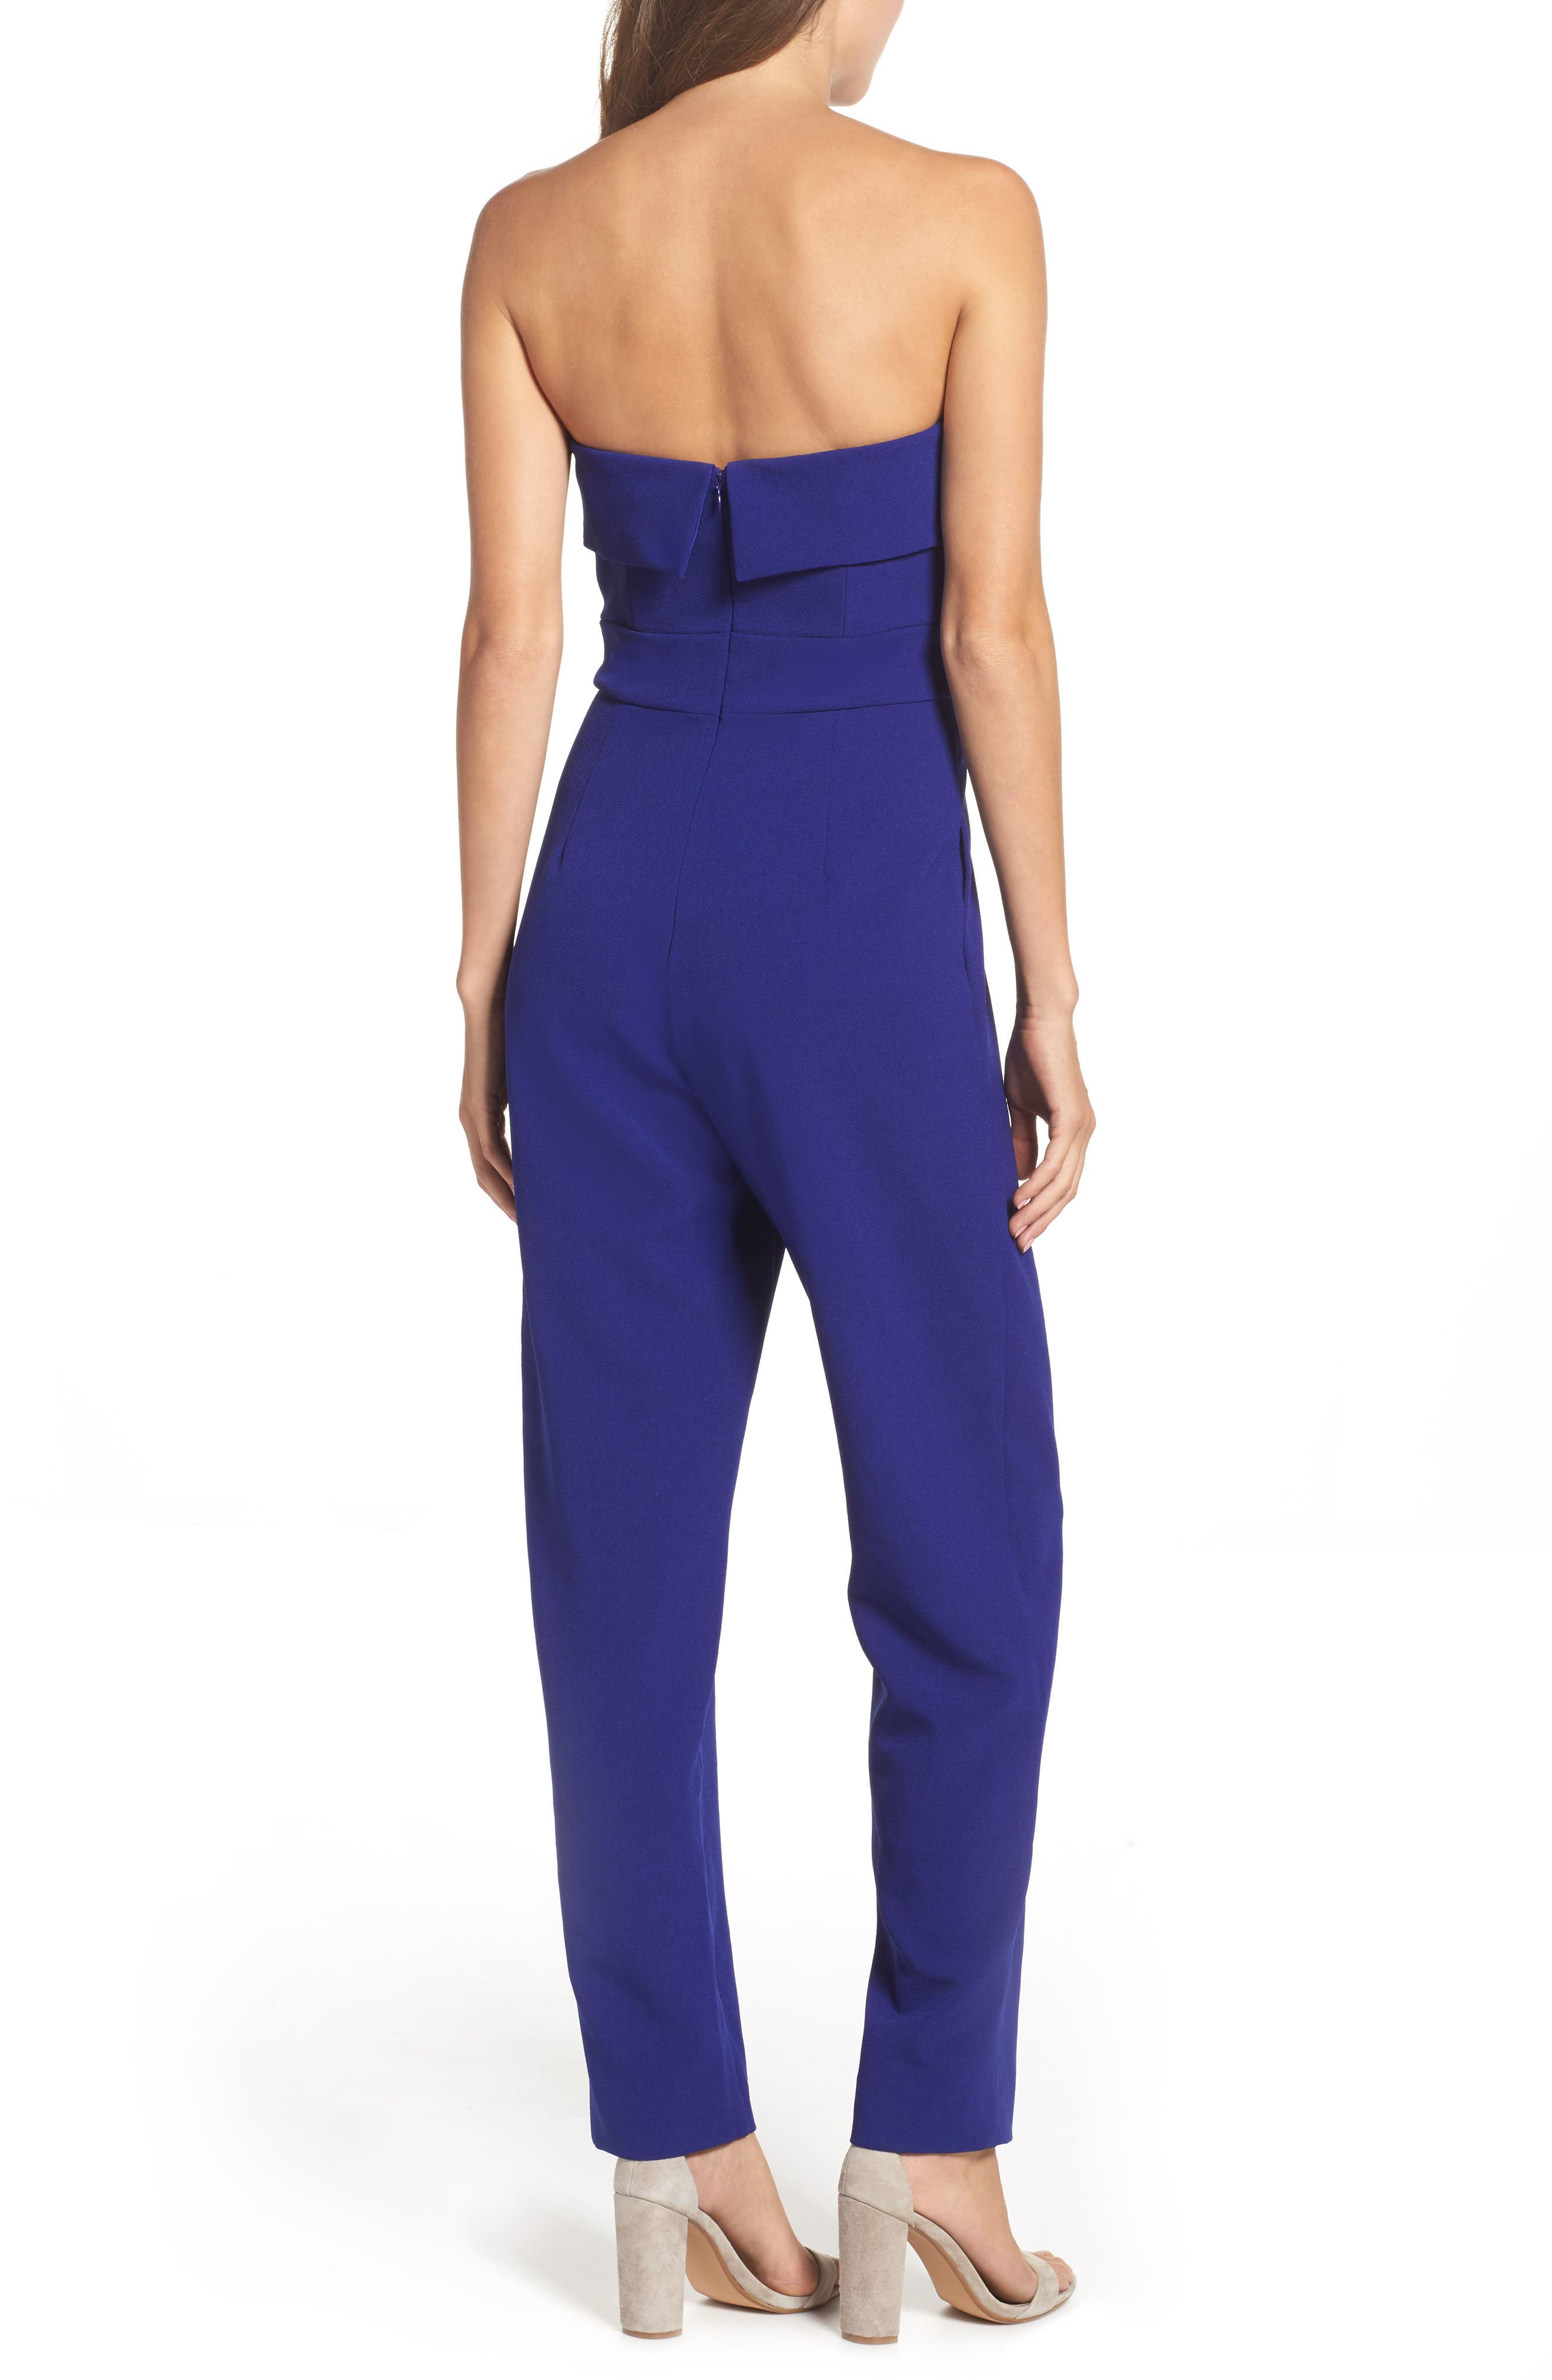 Alternate Image 3  - Vince Camuto Strapless Jumpsuit (Regular & Petite)